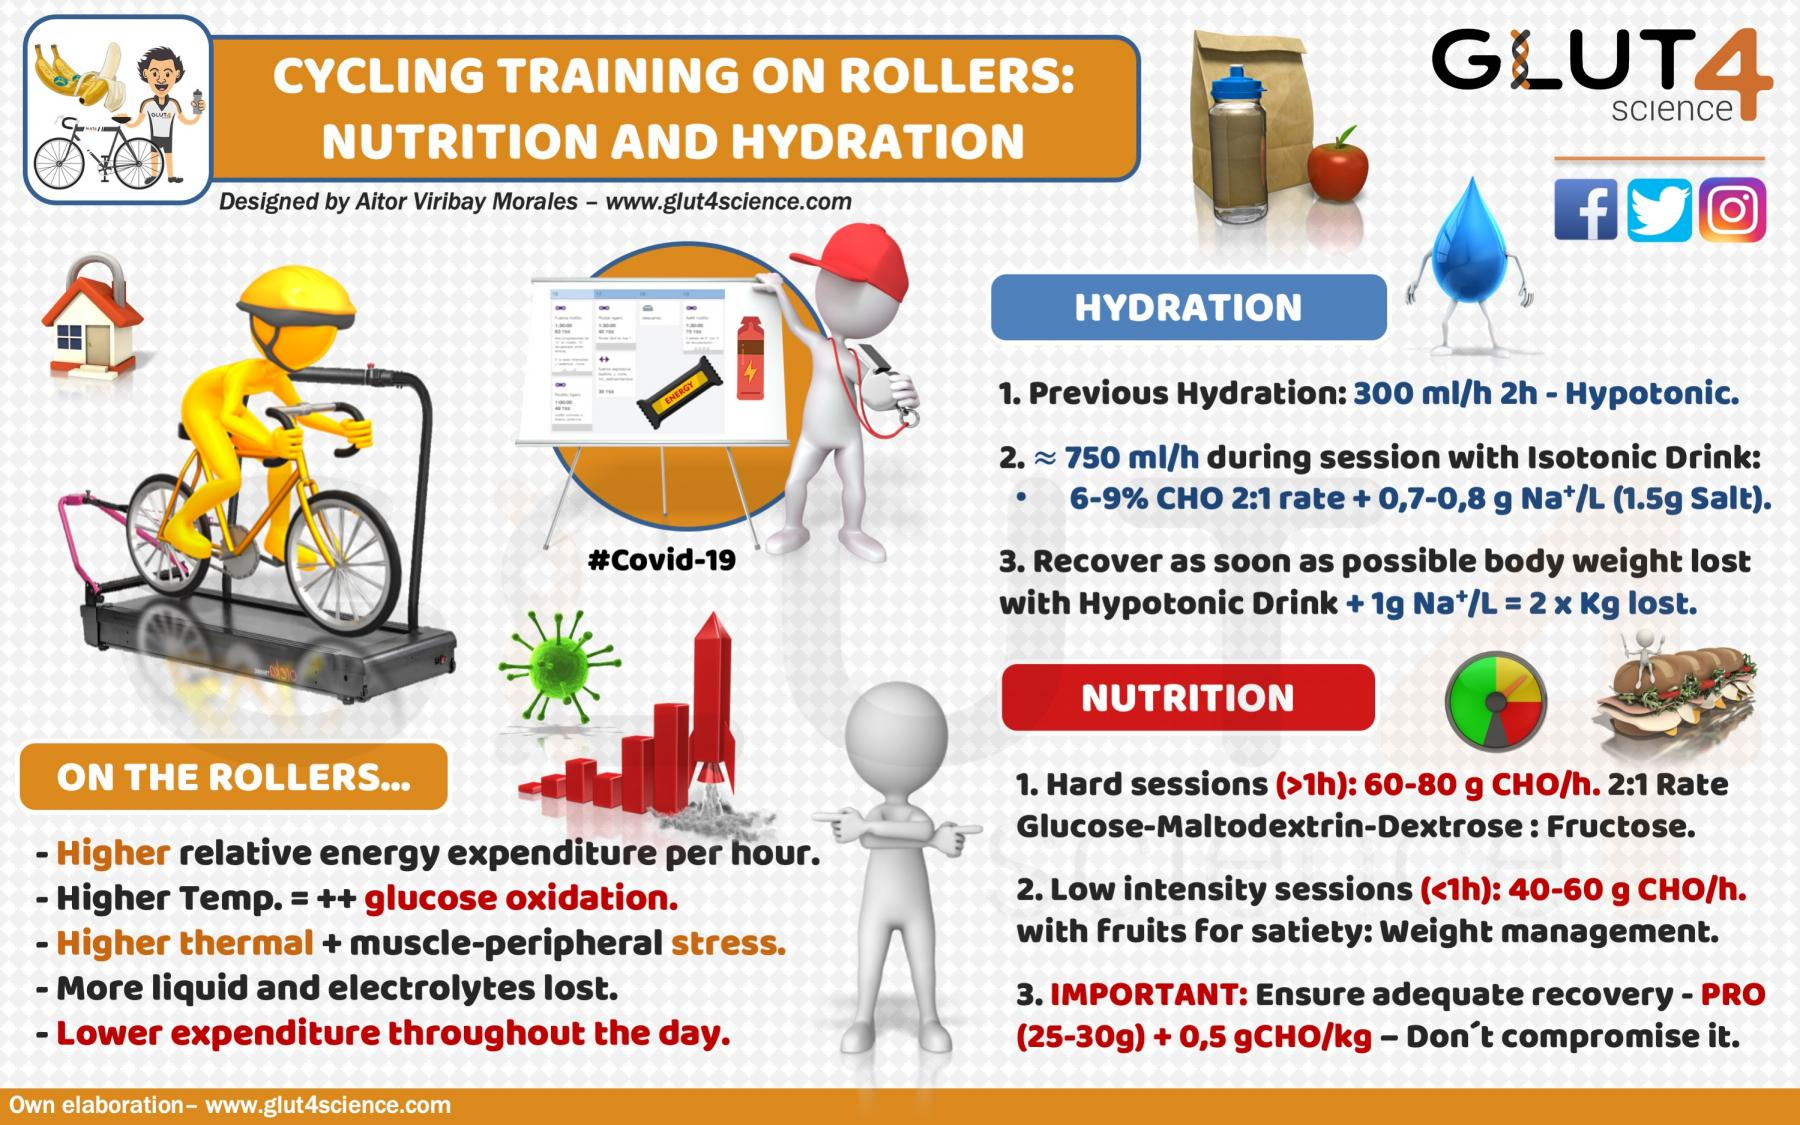 Nutrition and Hydration on Cycling Rollers Training